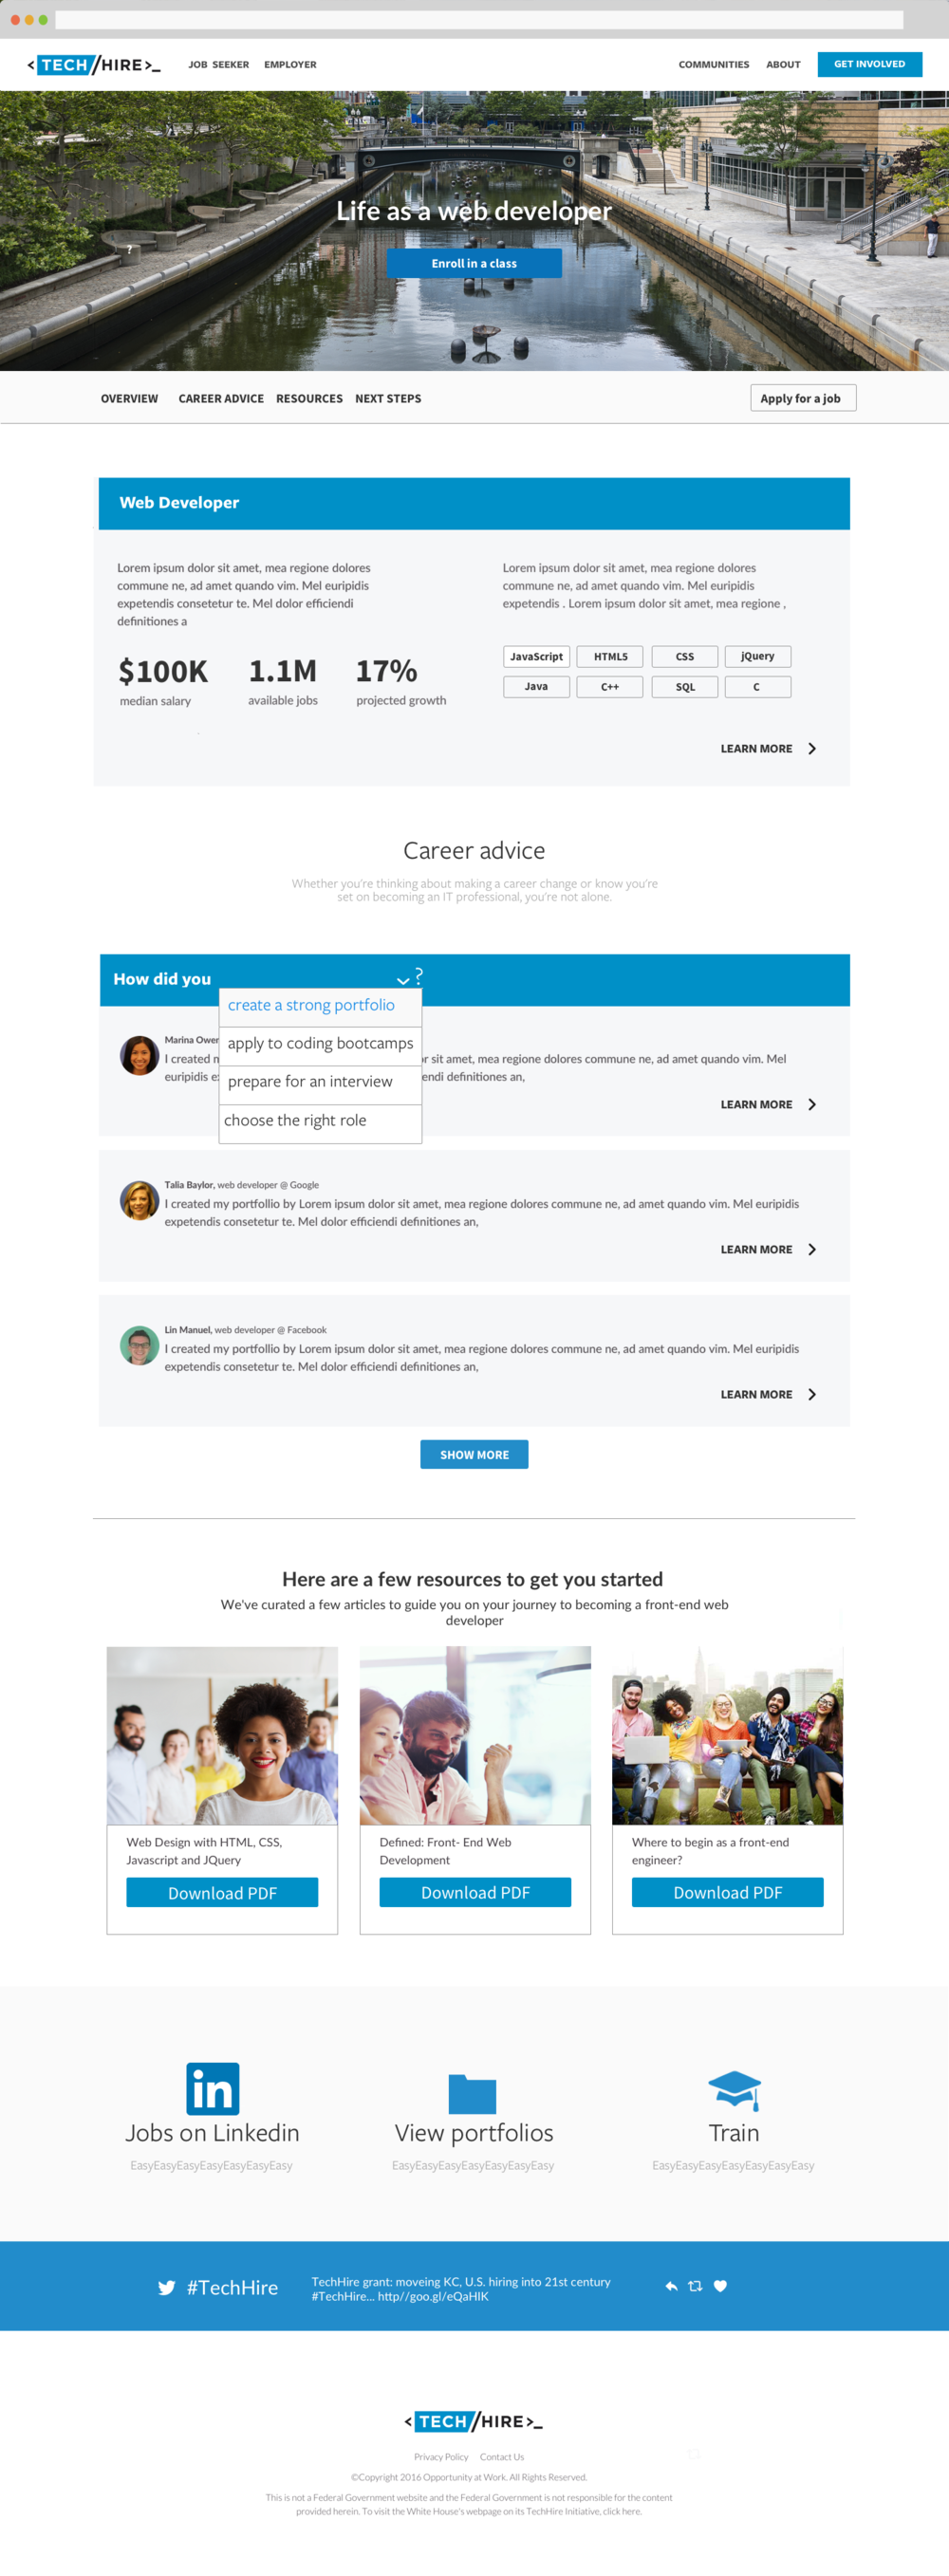 4 Explore The Jobs_Web Developer Job Detail Page with Career Advice dropdown.png